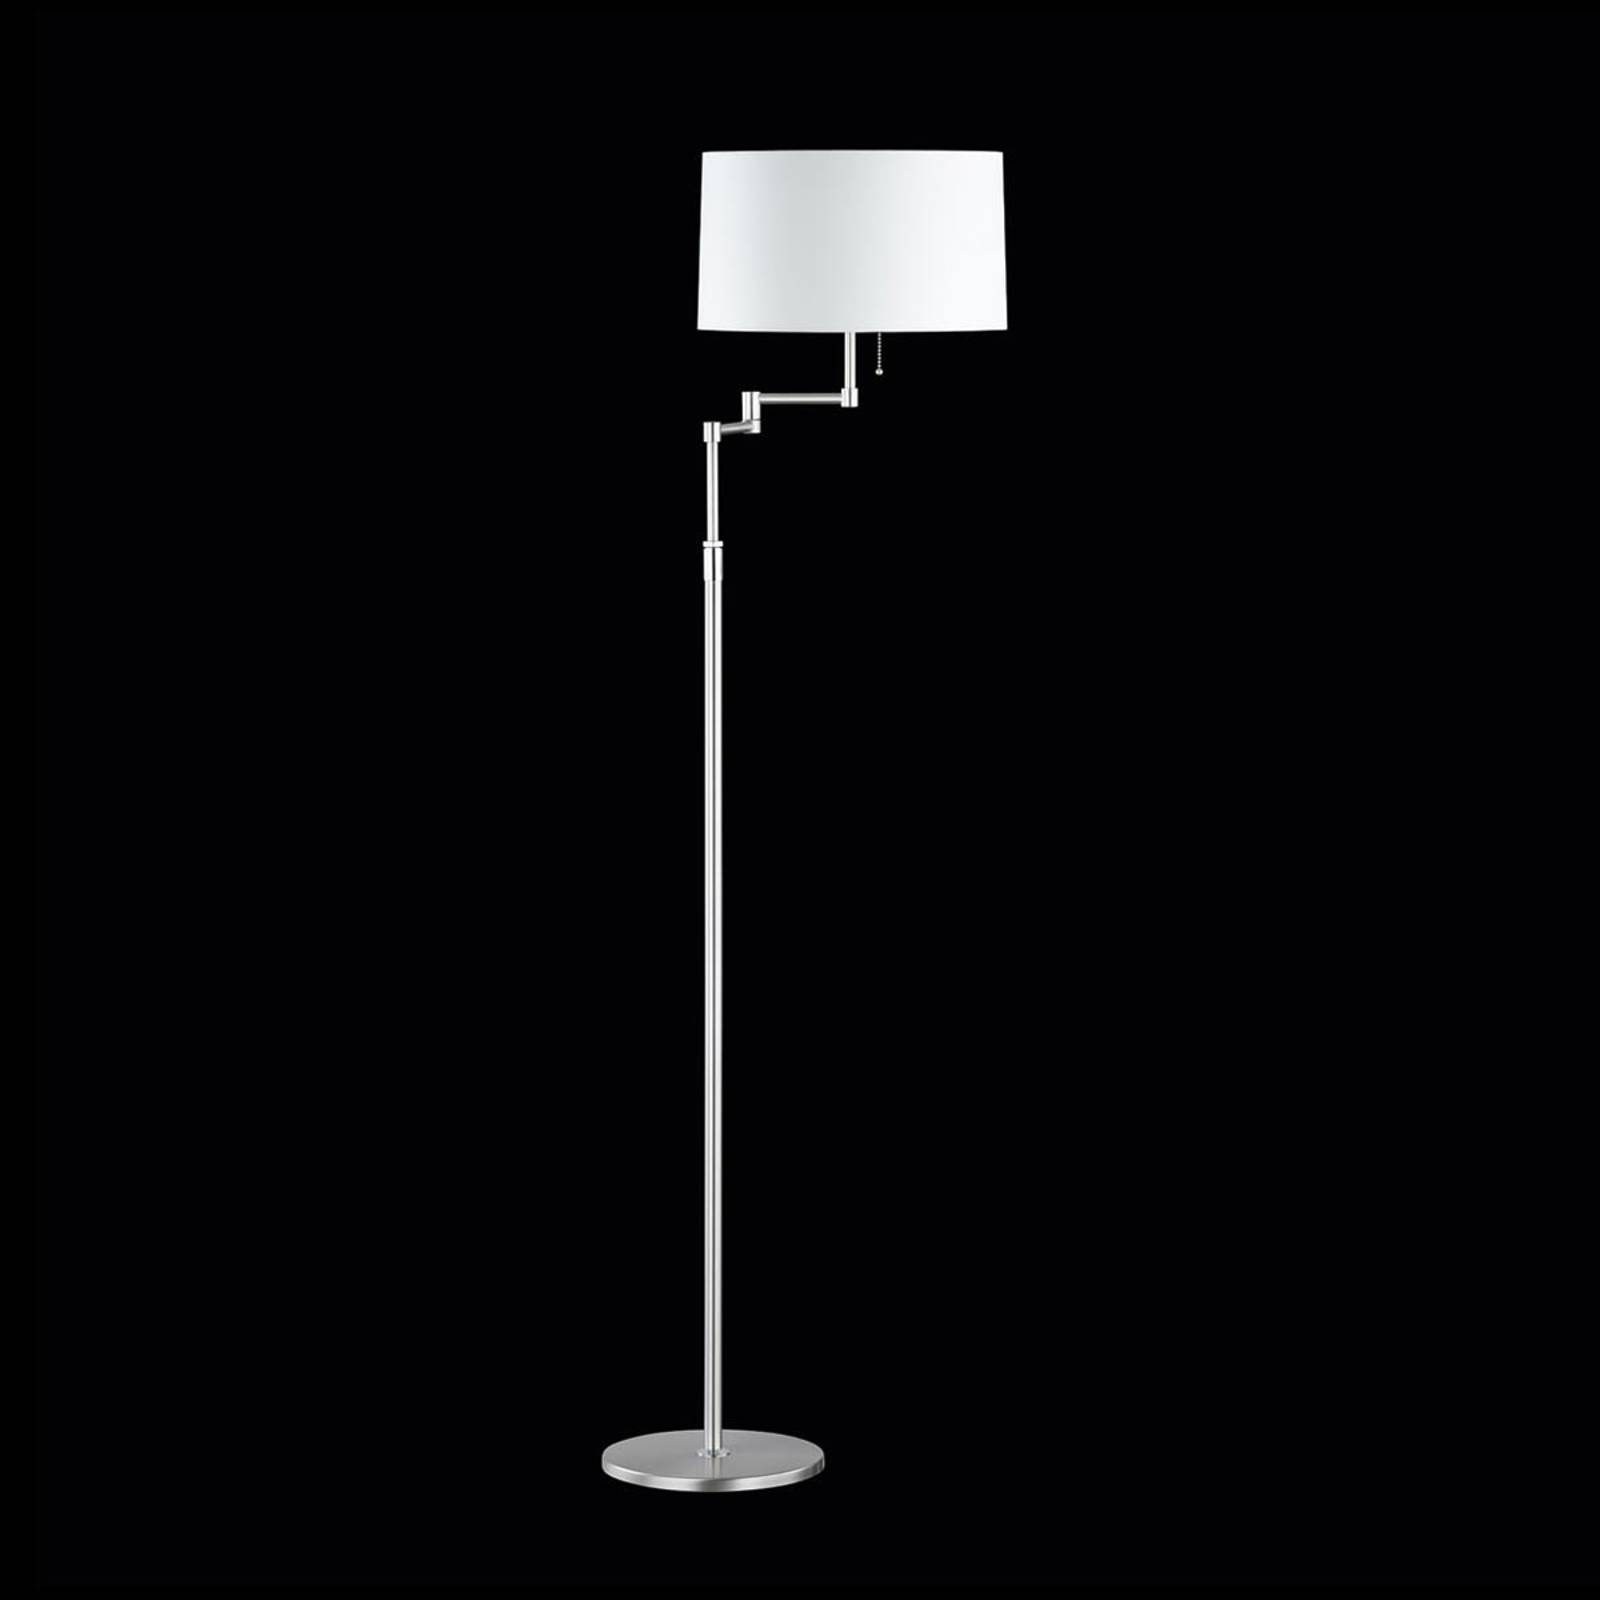 Loop Floor Lamp Adjustable from HUFNAGEL